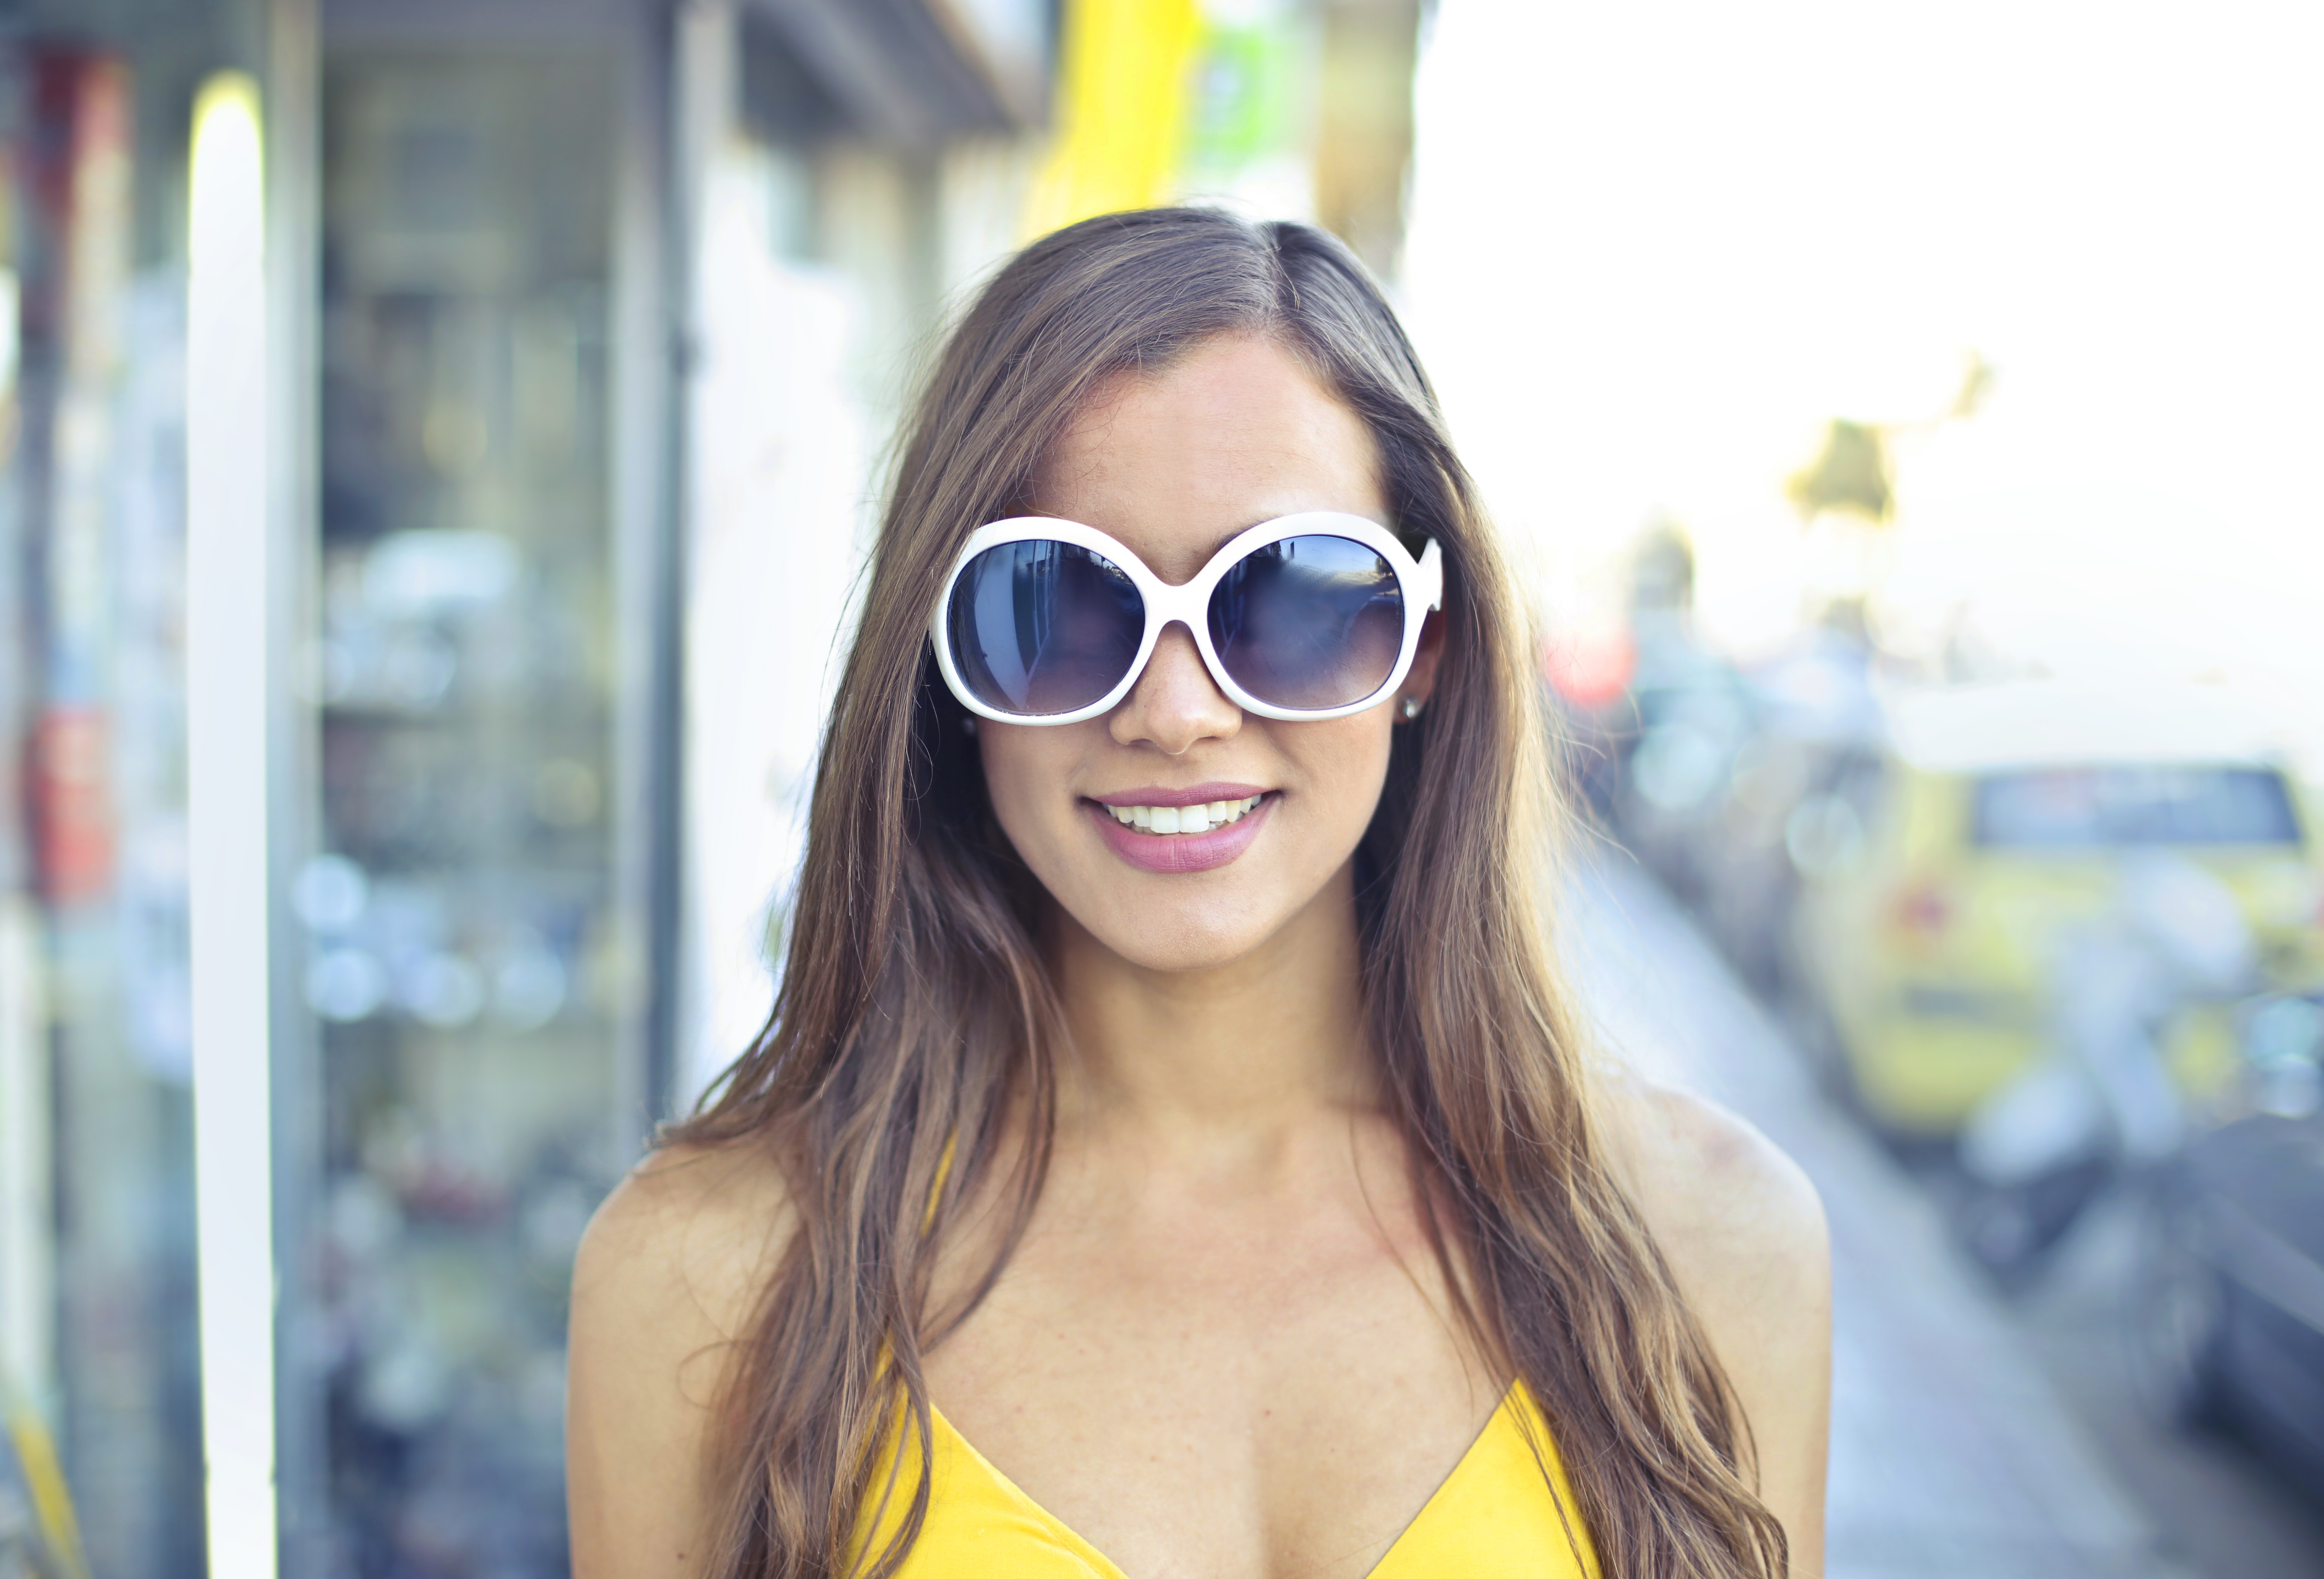 Woman Wearing Yellow Spaghetti Strap Top and Round Sunglasses, Person, Young, Woman, Wear, HQ Photo